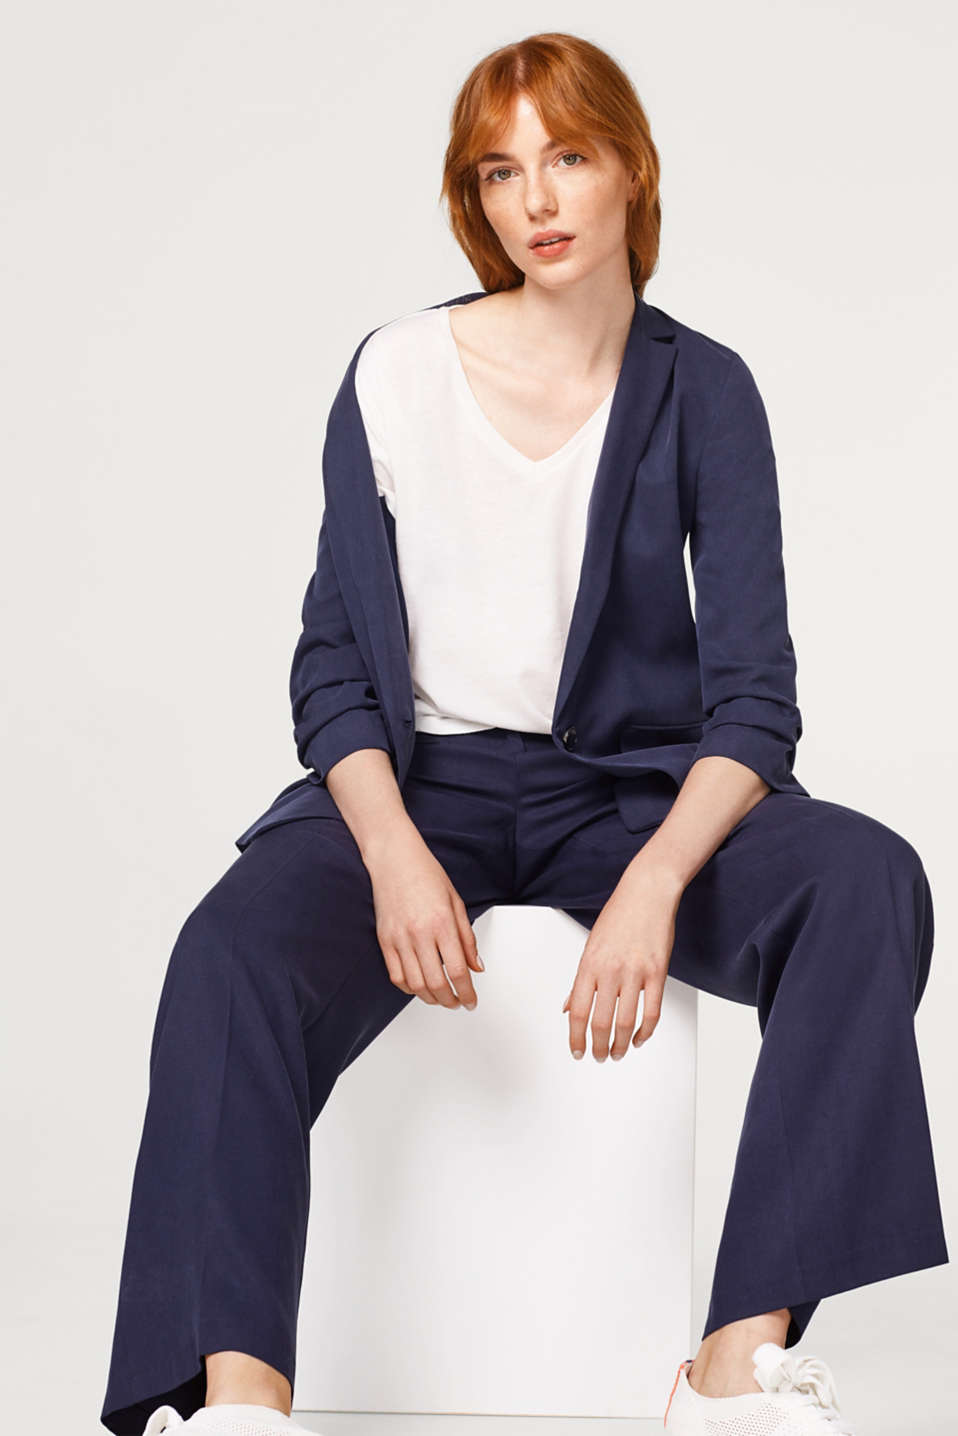 With linen: top with v-neckline